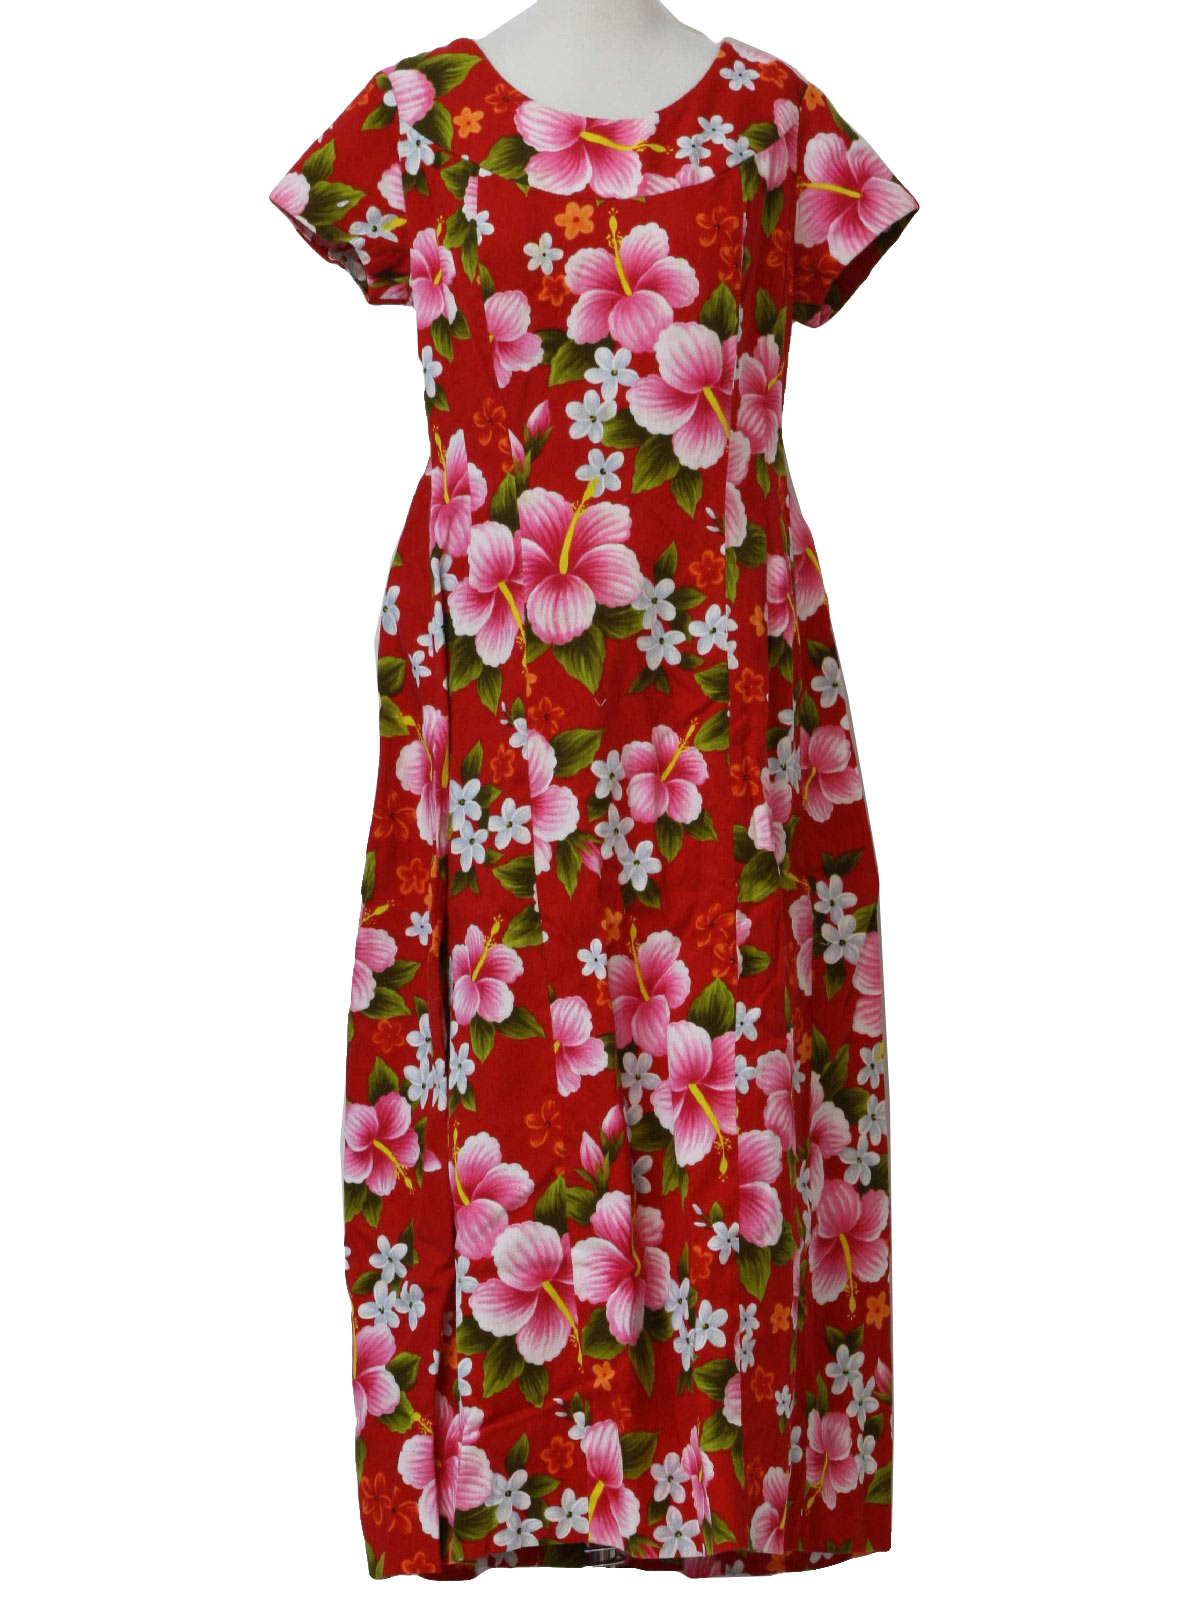 Fantastic The Colorful And Sweet Hawaiian Dress For Women